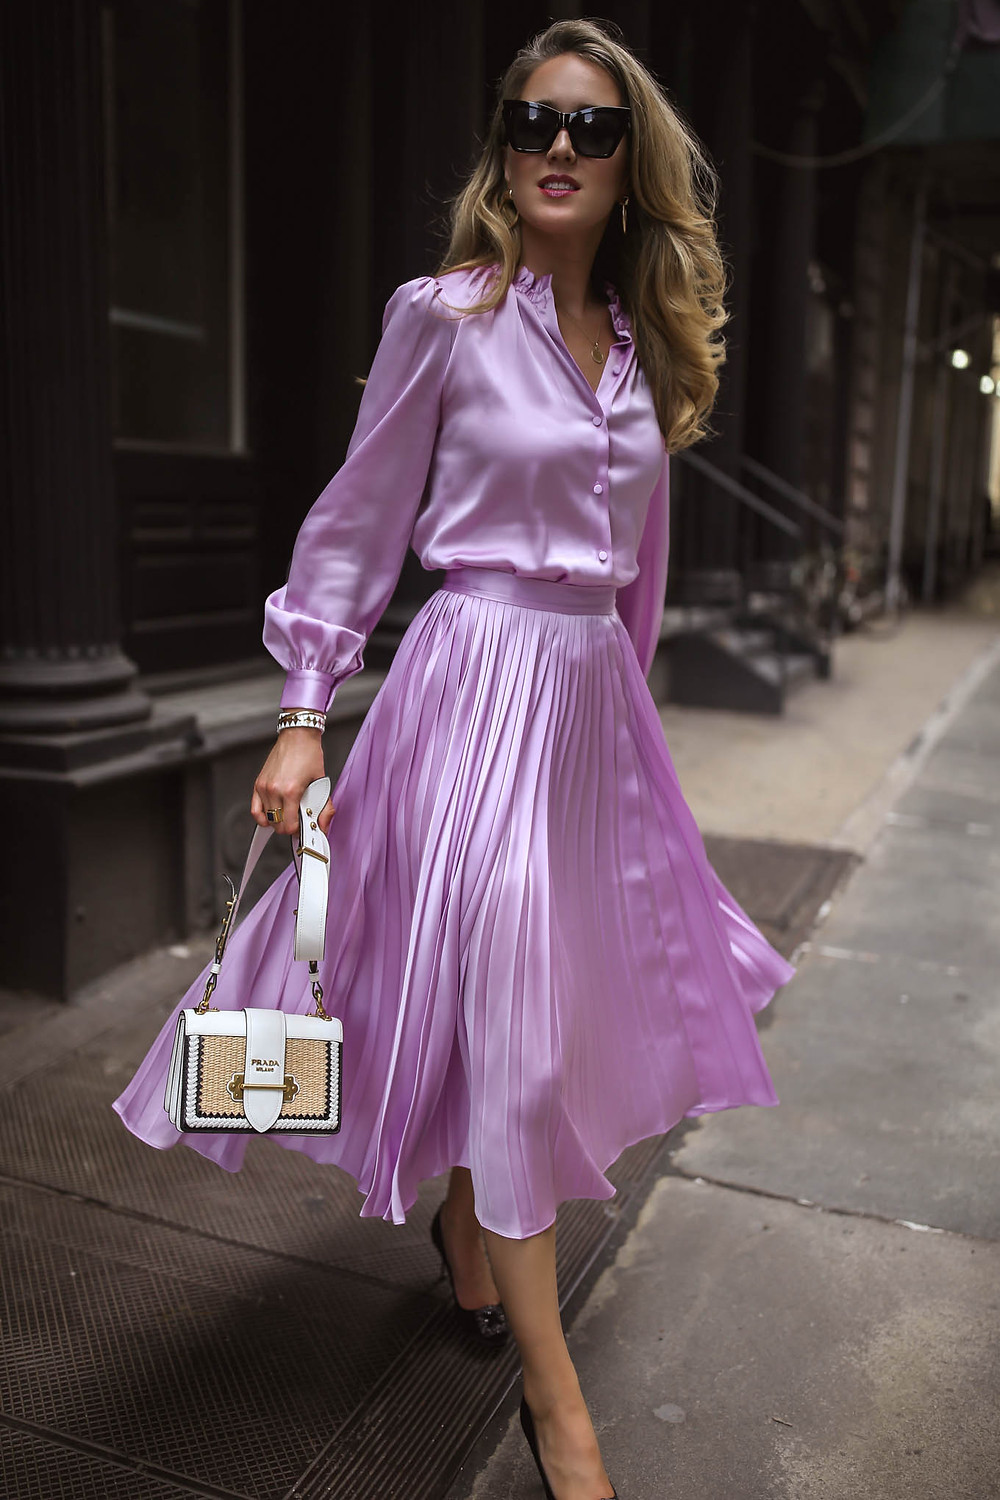 falda plisada vestido plisado blusa pleated dress pleated skirt moda fashion tendencia clasico sogisticado girly fashionista trend outfit look inspiracion revista magazine panama pty